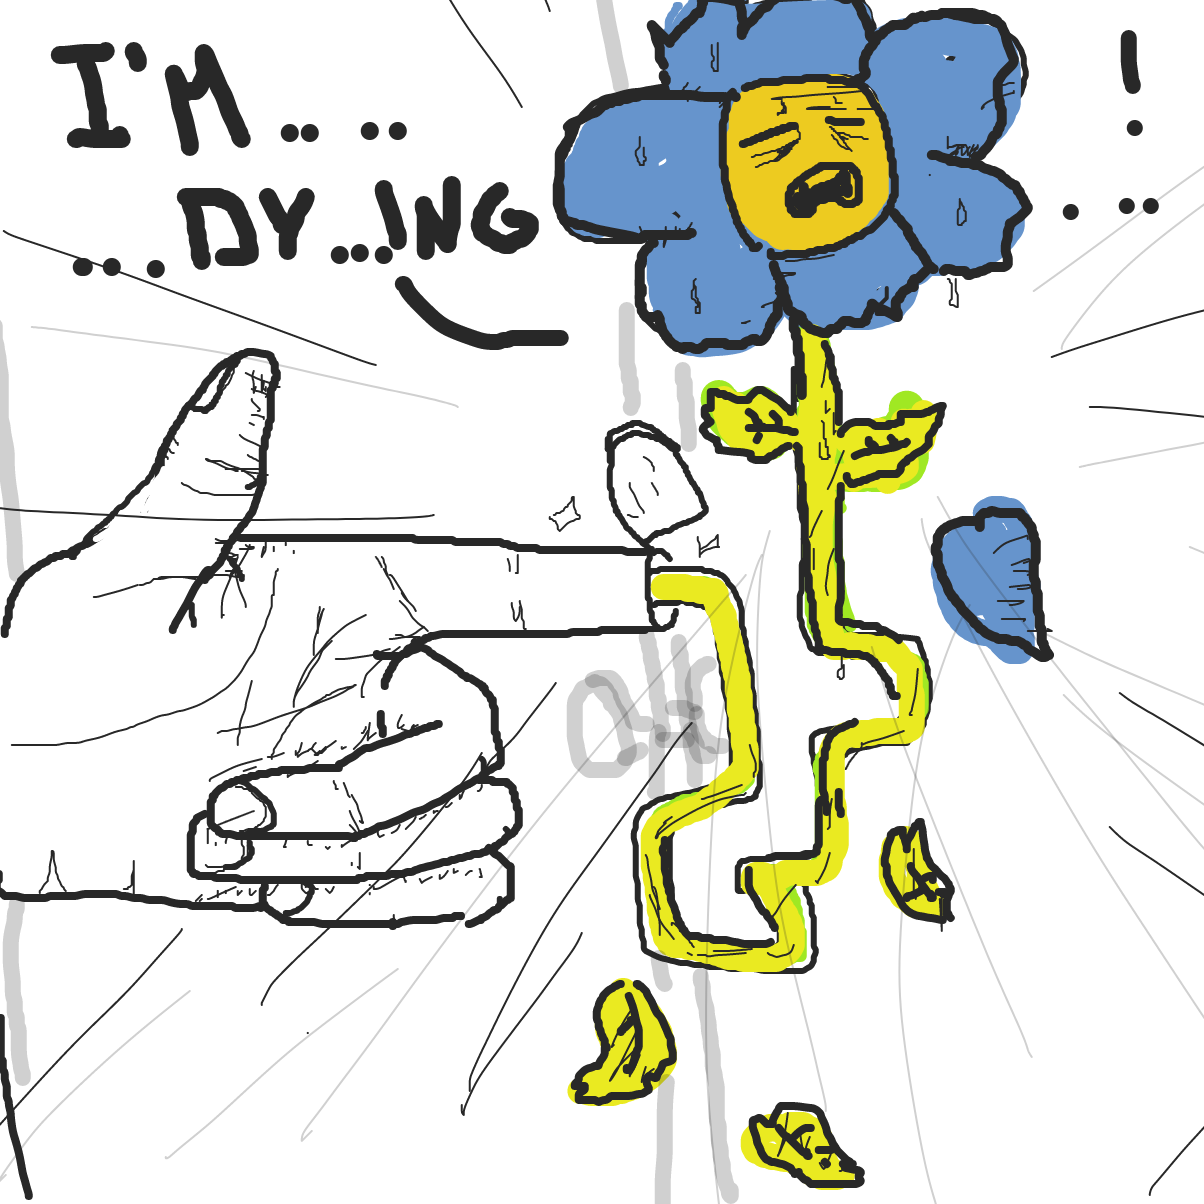 flower is dying - Online Drawing Game Comic Strip Panel by Eekcarlos